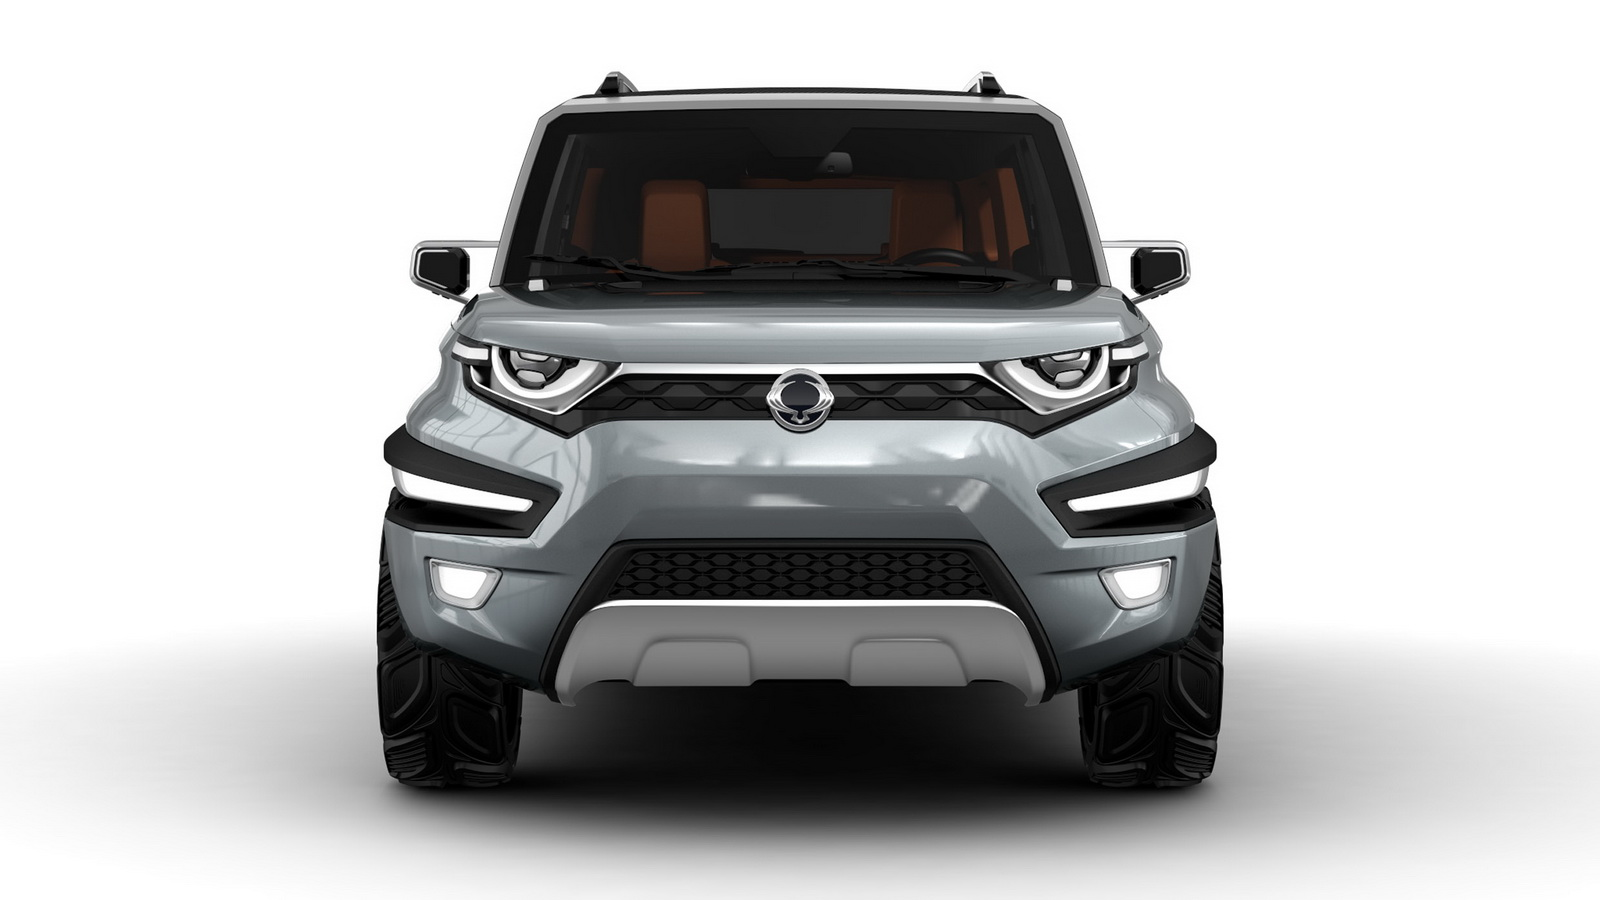 SsangYong Korando To Get Electric Variant With 300 Km Range